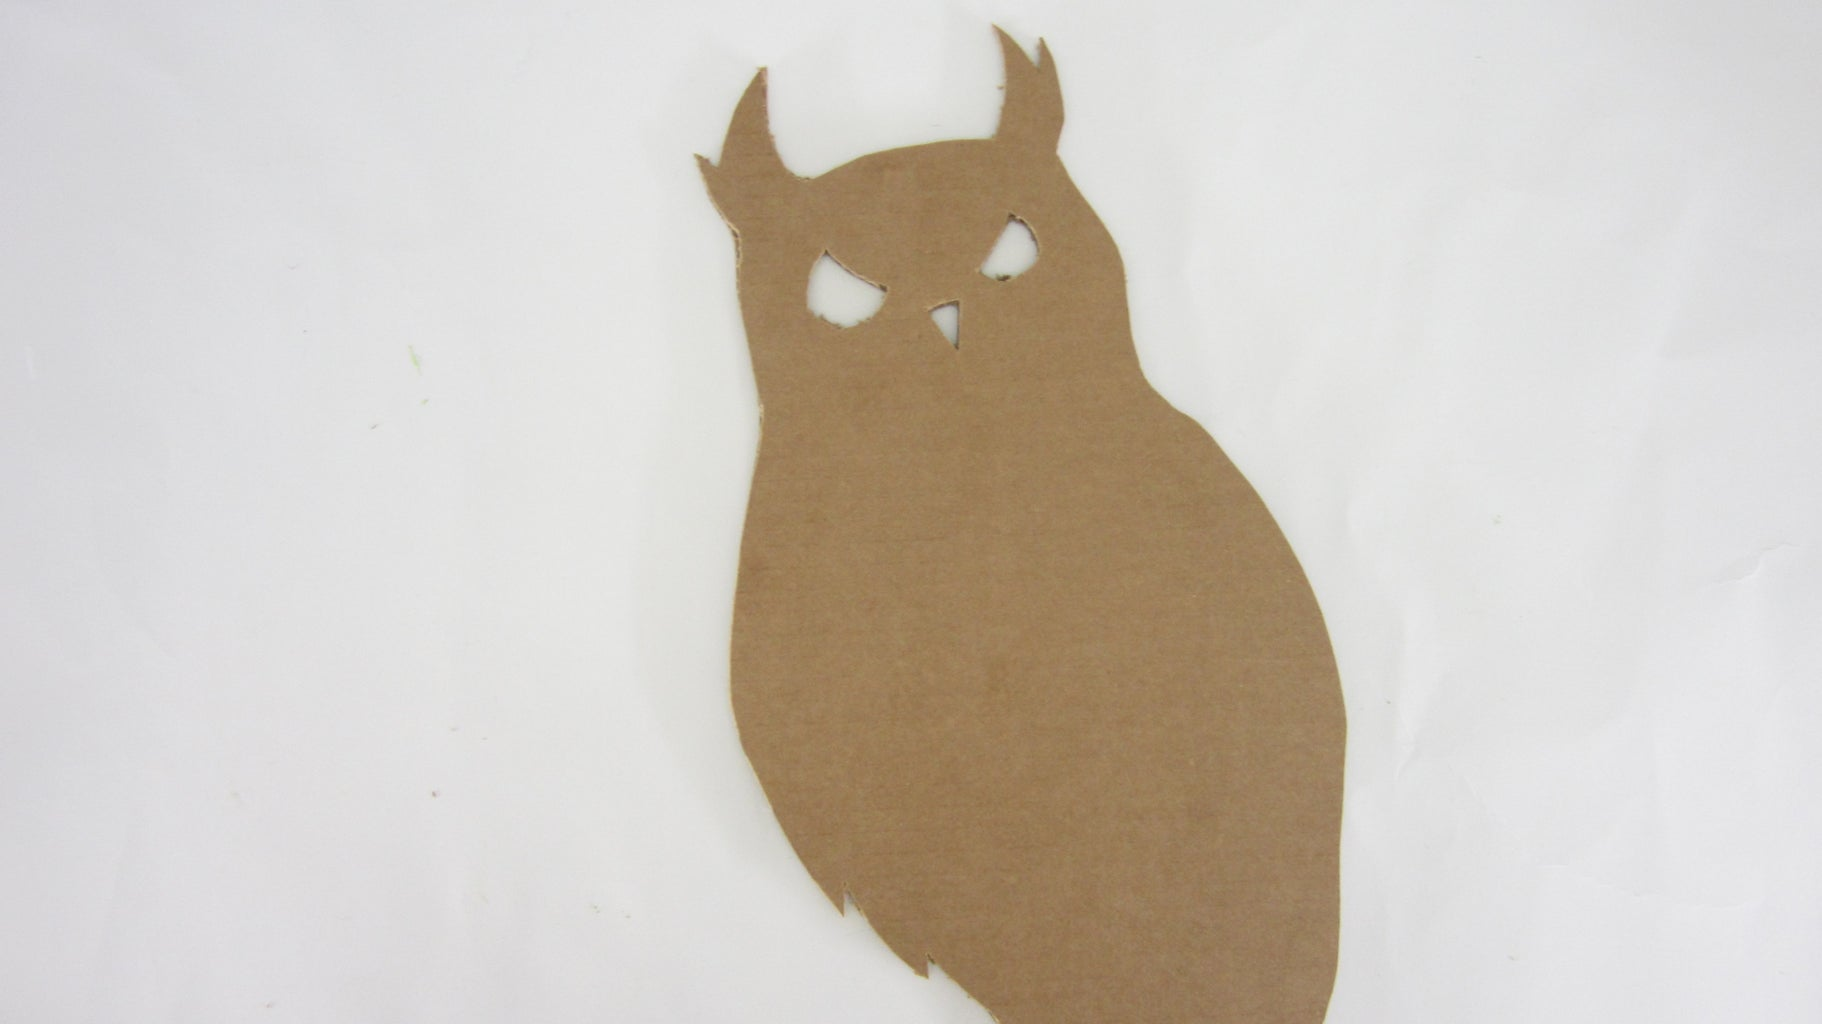 Cut Out the Shape From the Cardboard